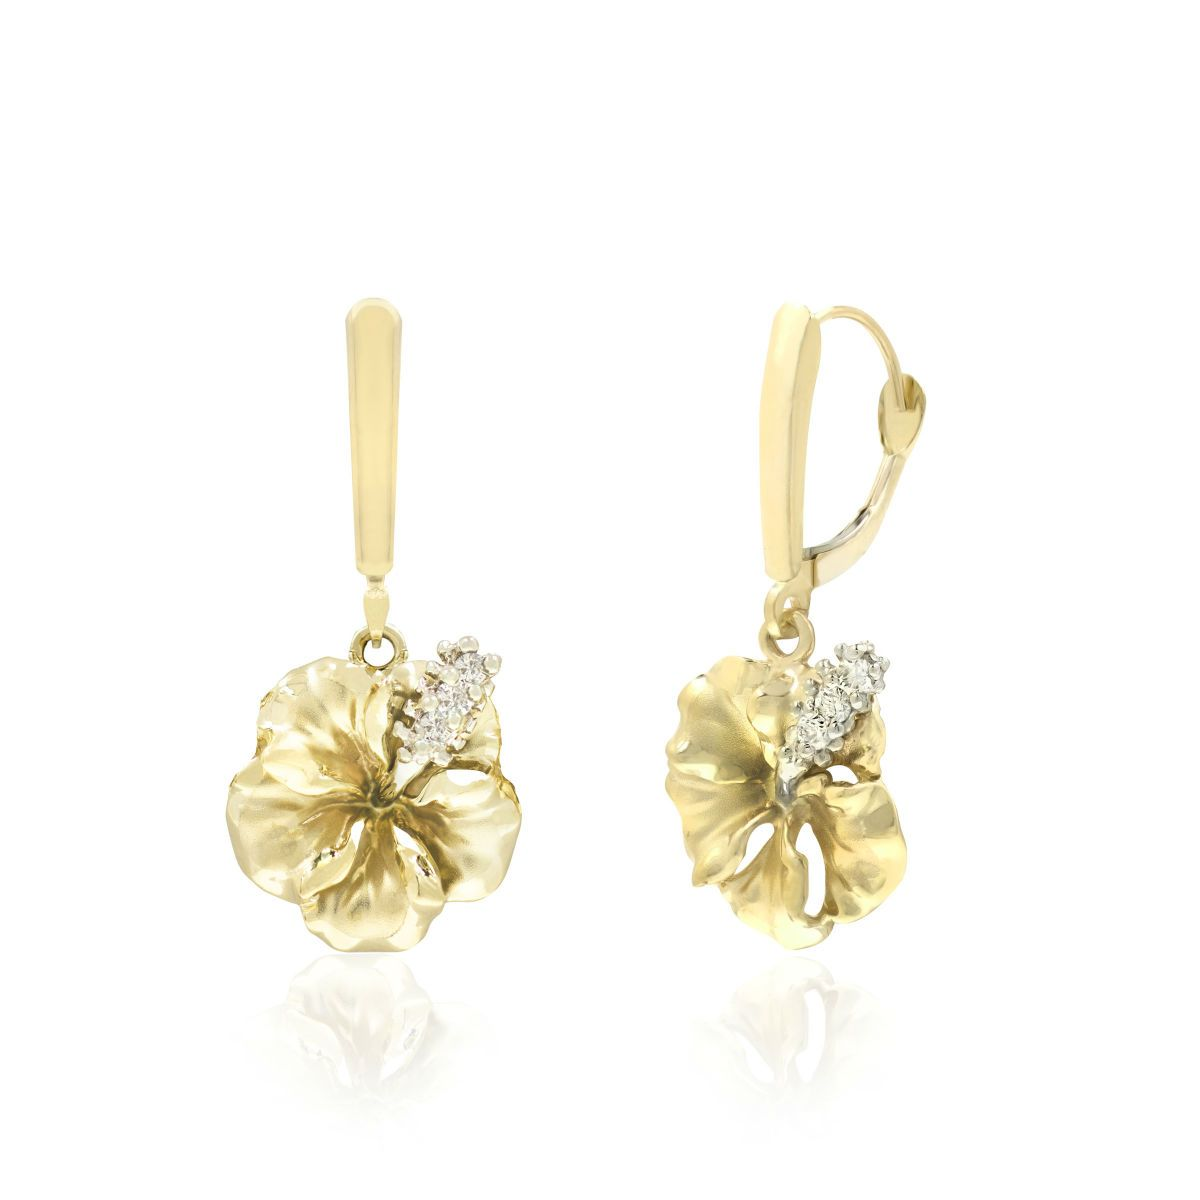 14k Gold Hibiscus Diamond Leverback Earrings 16mm 0 12tcw Diamonds Available In A Pendant As Well As Rose Gold And White Earrings Spring Jewelry Jewelry